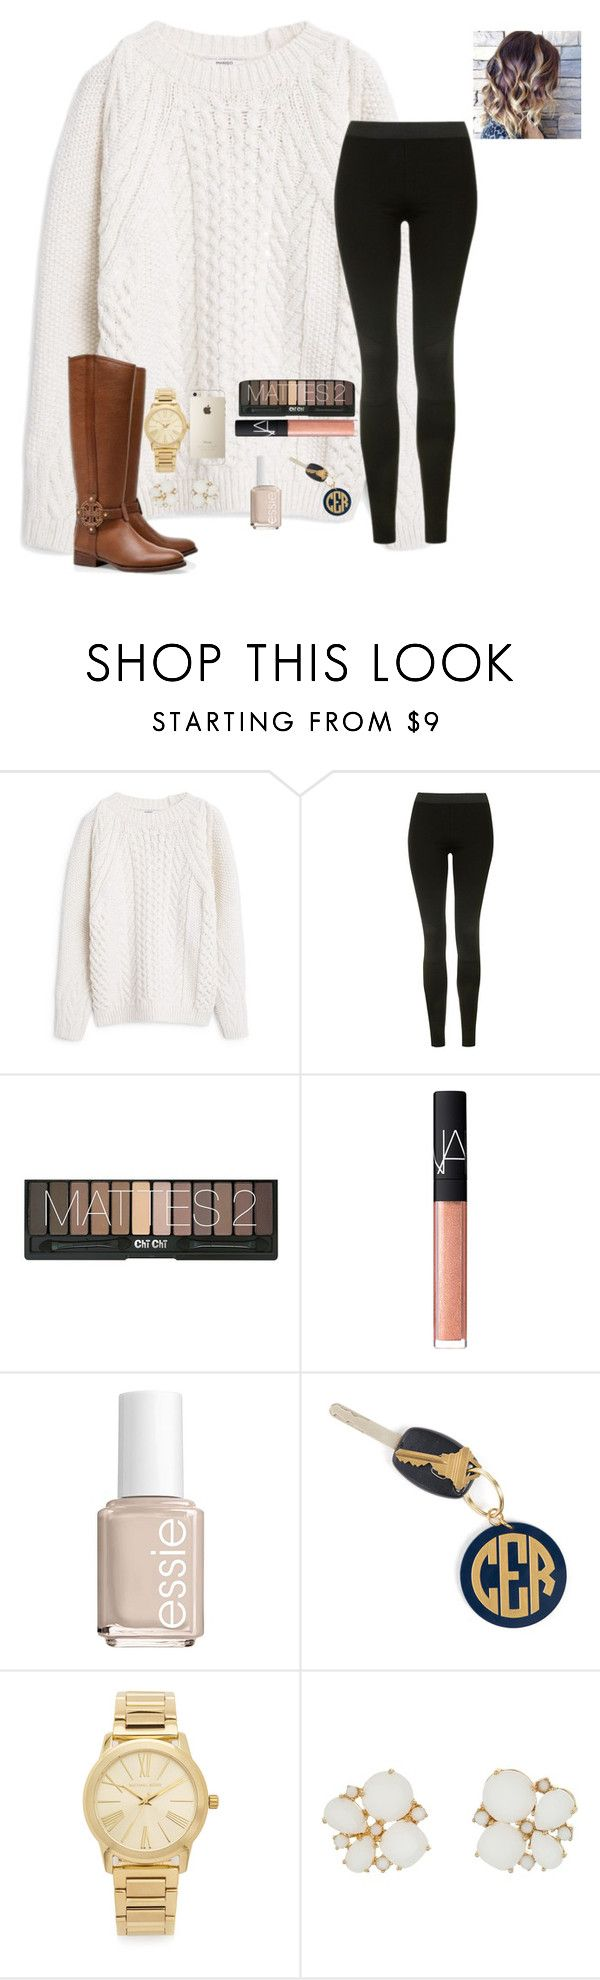 """""""So let me hold both your hands in the holes of my sweater"""" by raquate1232 ❤ liked on Polyvore featuring MANGO, Topshop, Tory Burch, NARS Cosmetics, Essie, Hartford, Michael Kors and Kate Spade"""